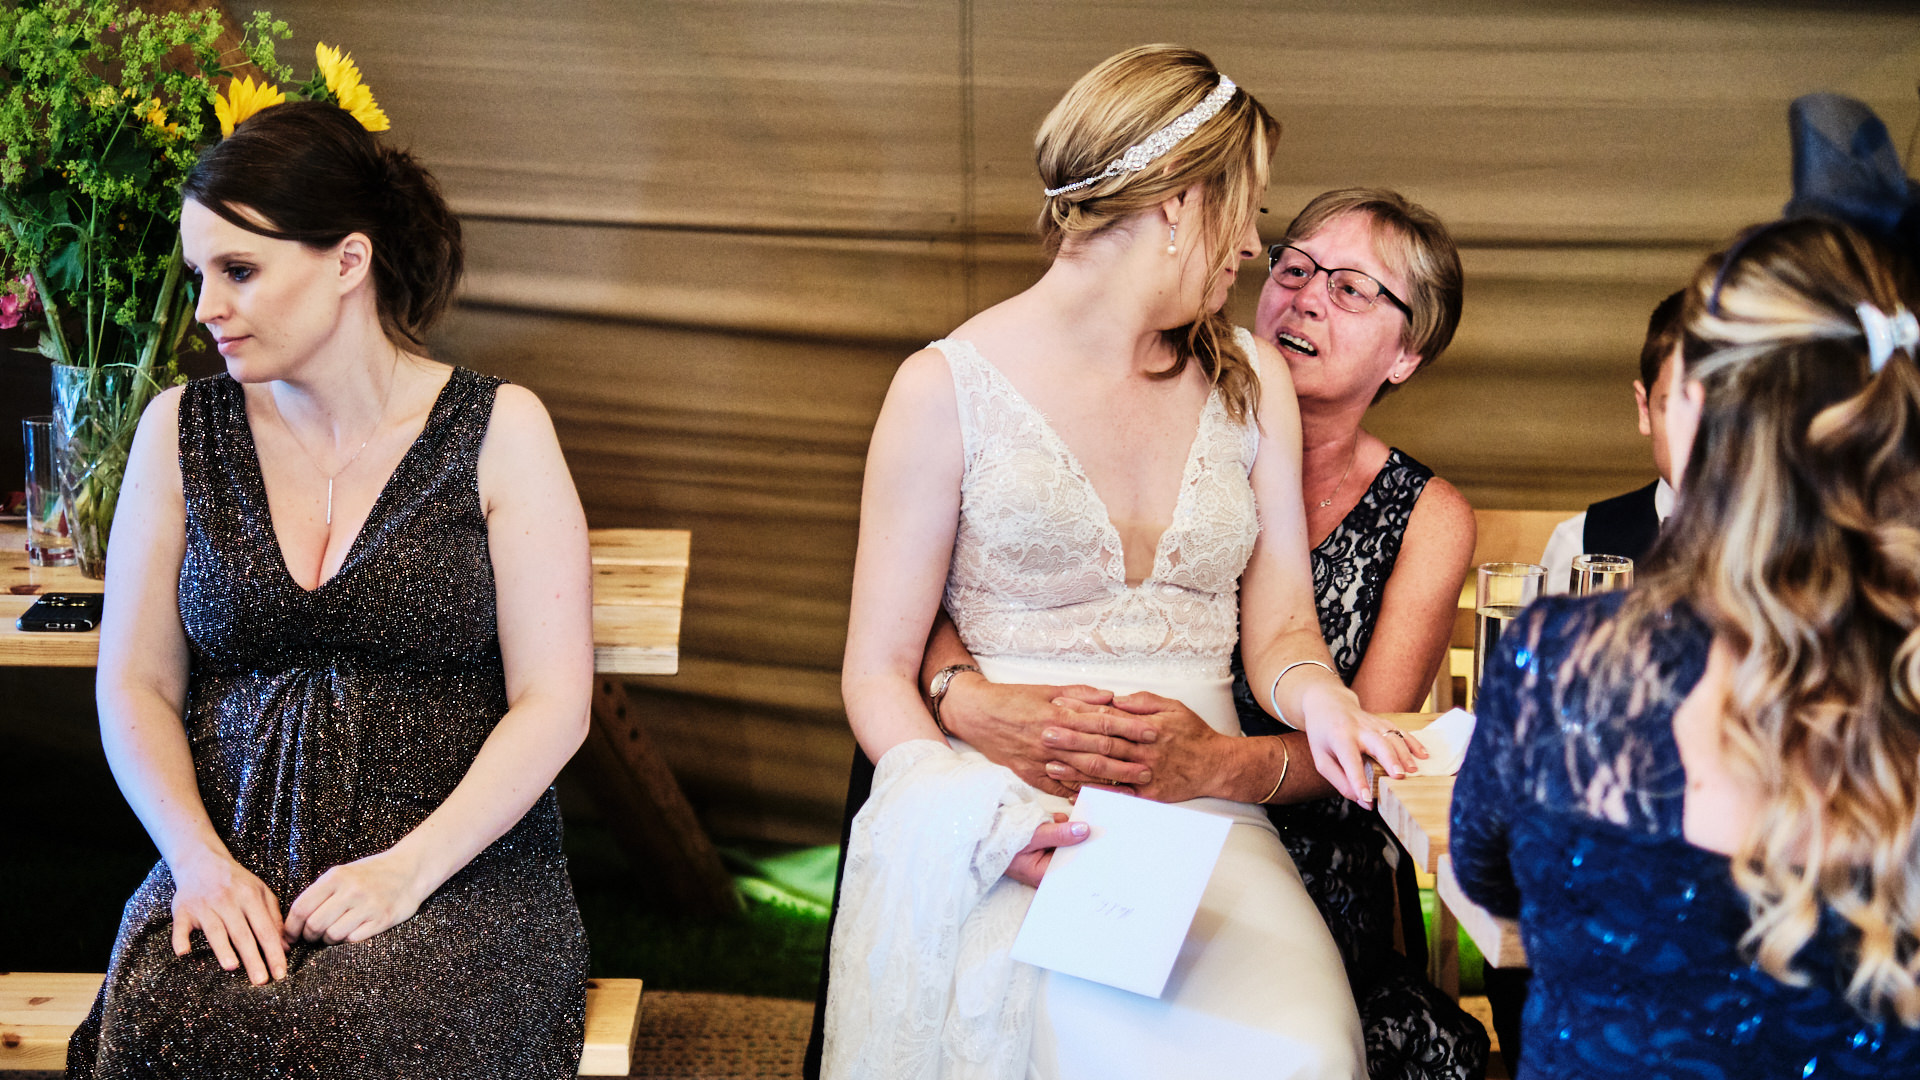 colour photograph of a bride sitting open a female wedding guest's knee during her wedding reception